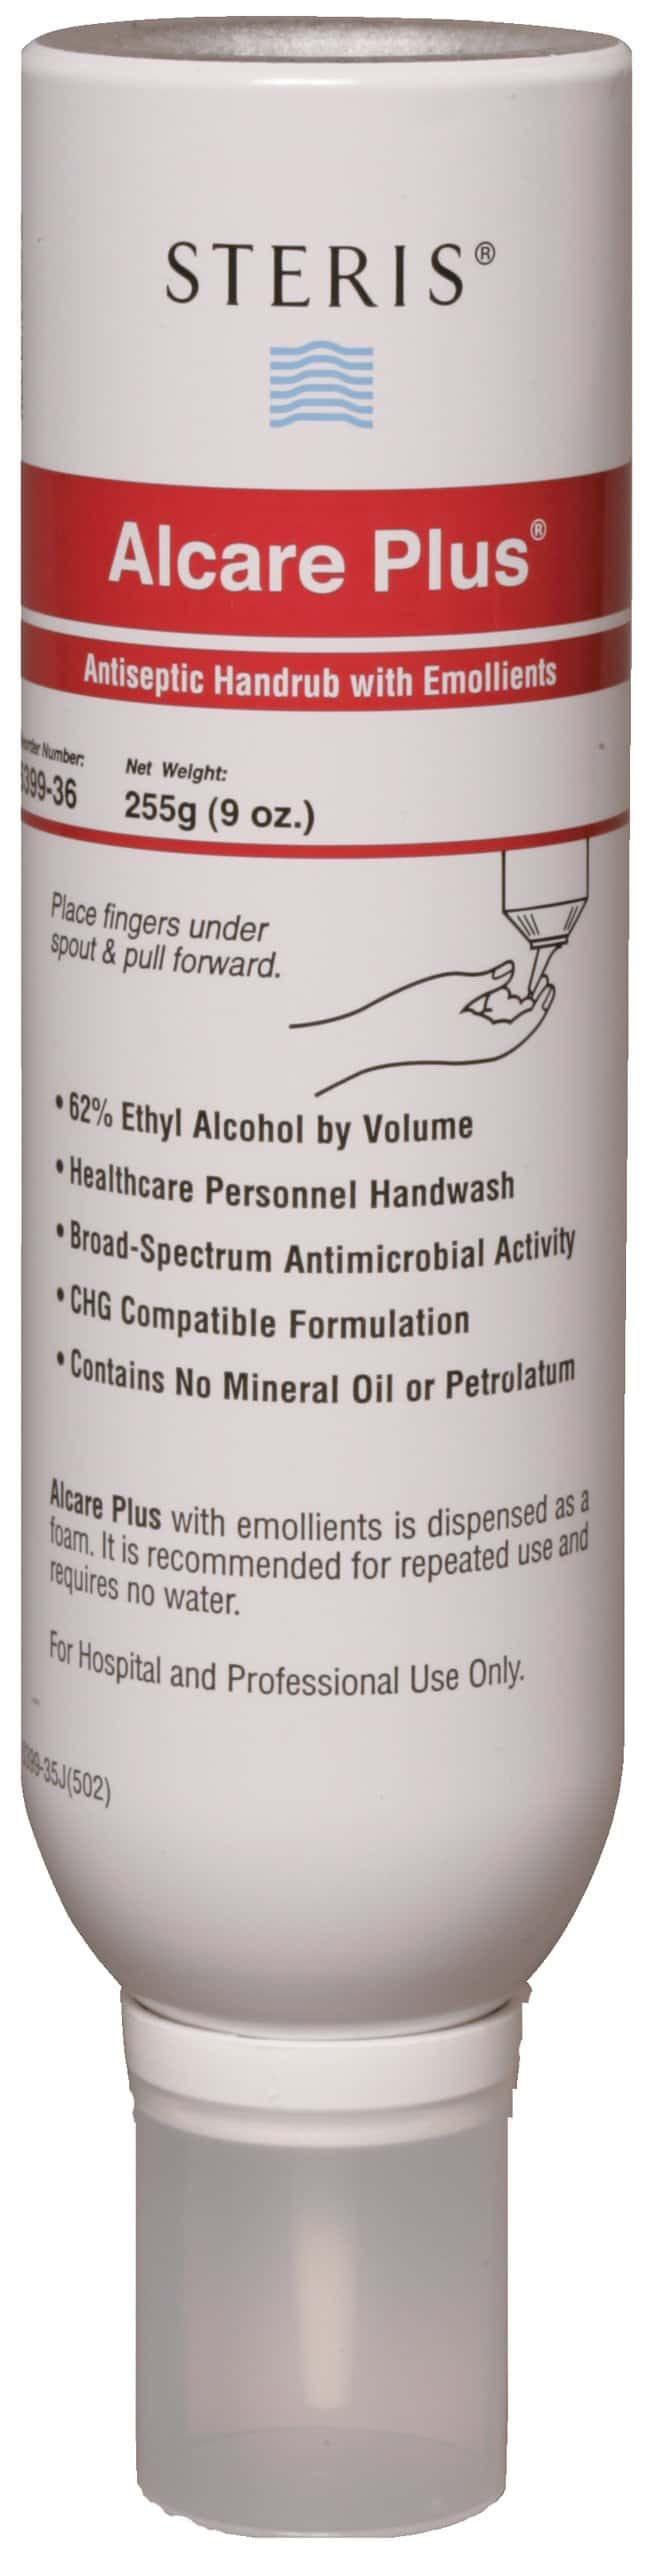 Steris Alcare Plus Antiseptic Handrub with Emollients:Gloves, Glasses and